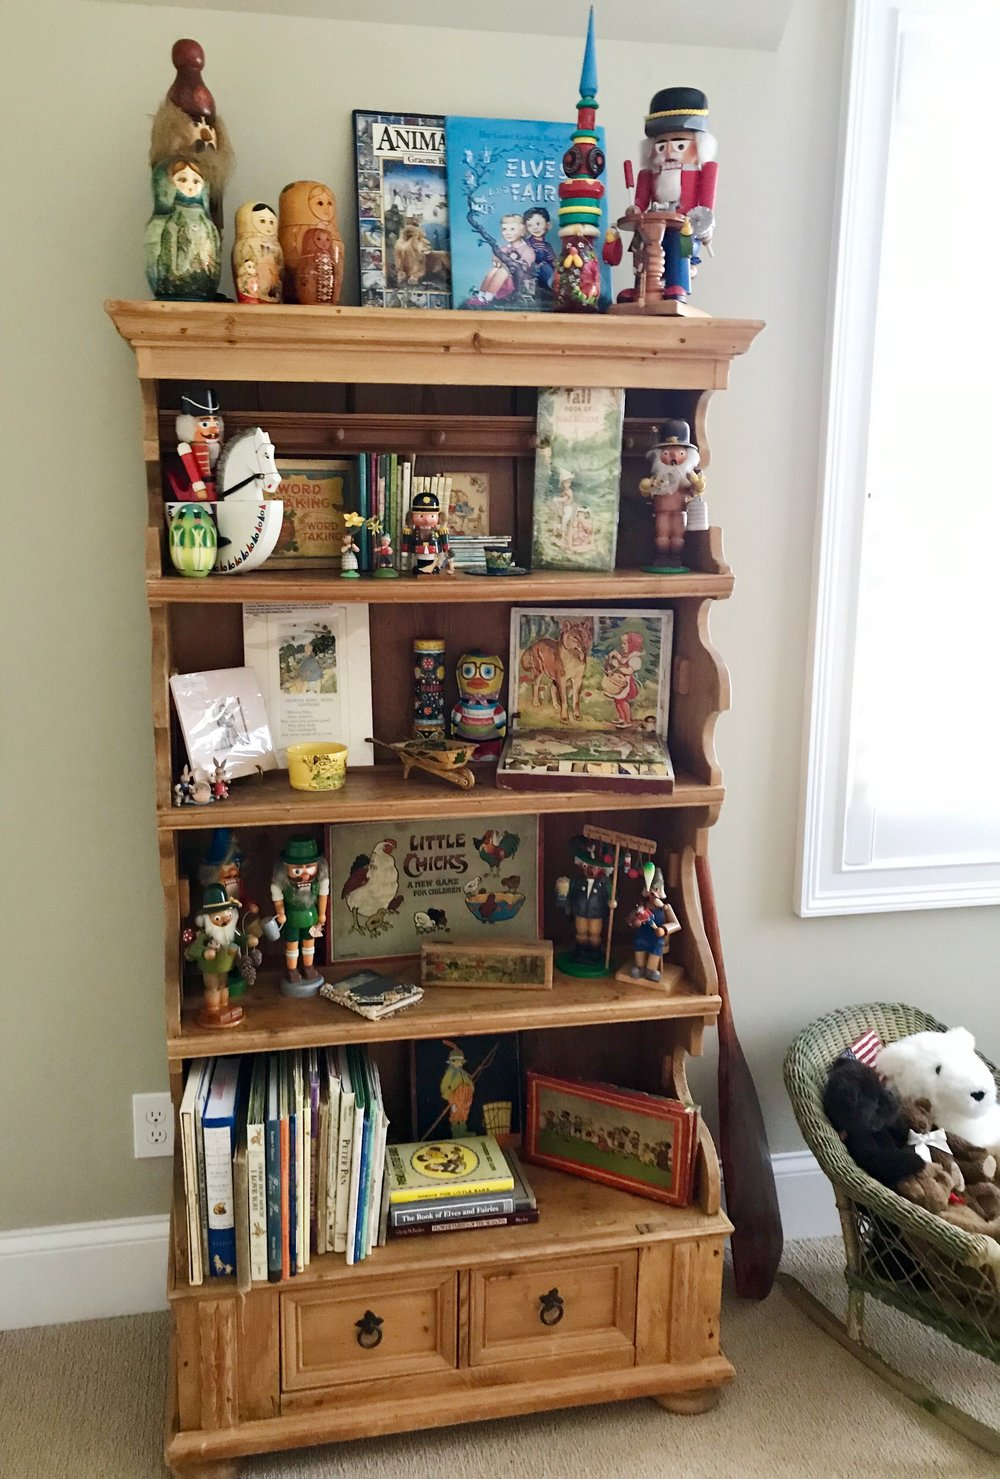 Collected vintage and antique toys and children's books from all over the world